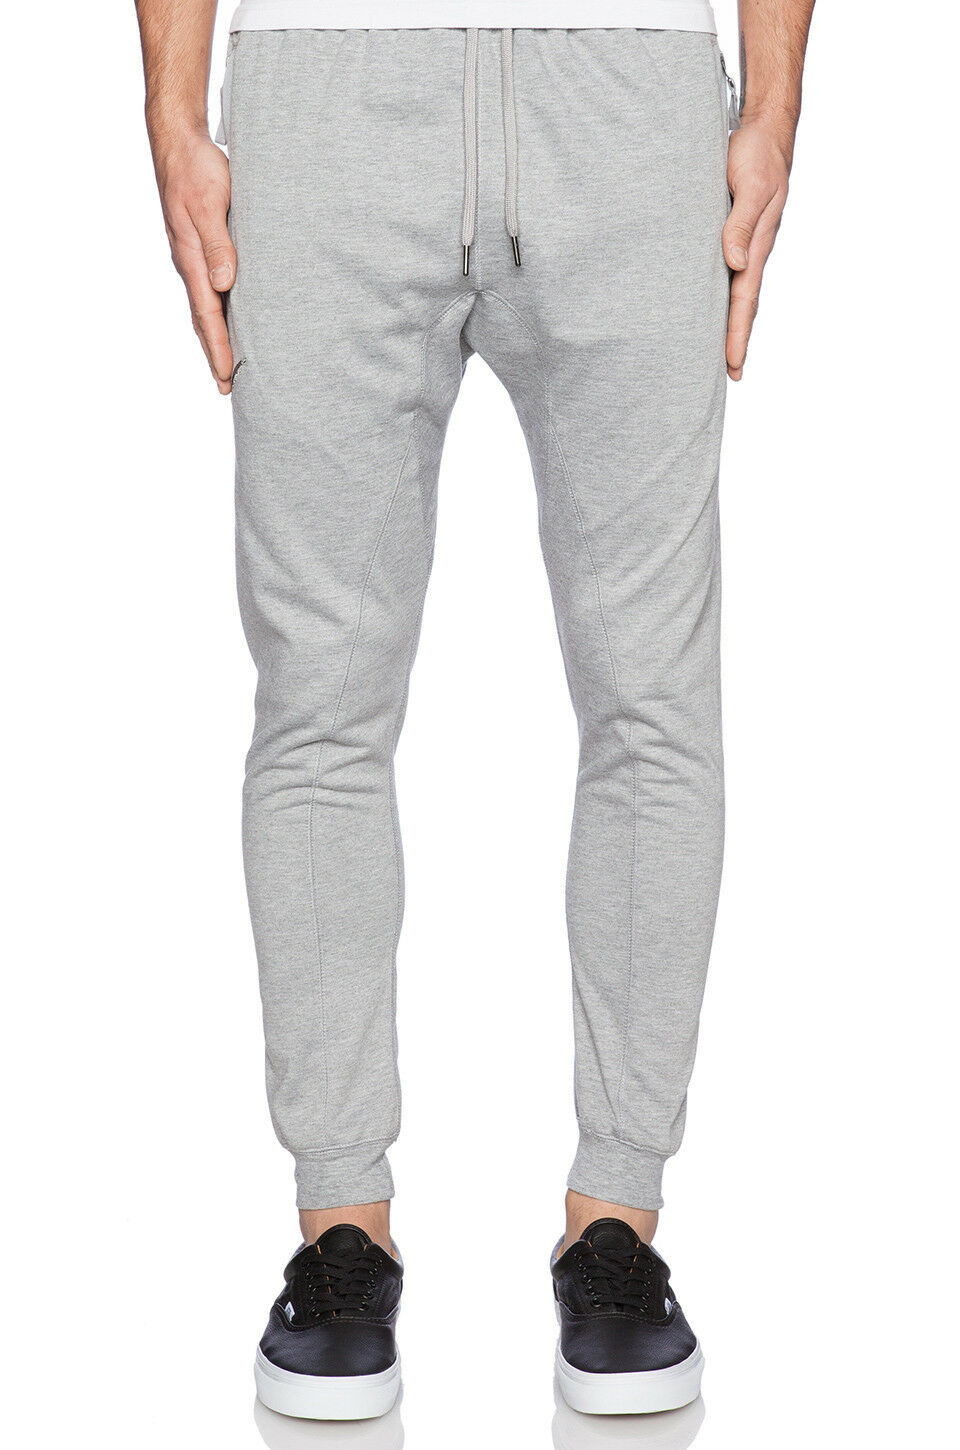 Joggers Publish Brand Sweatpants Size 36 Alek Fleece Pant